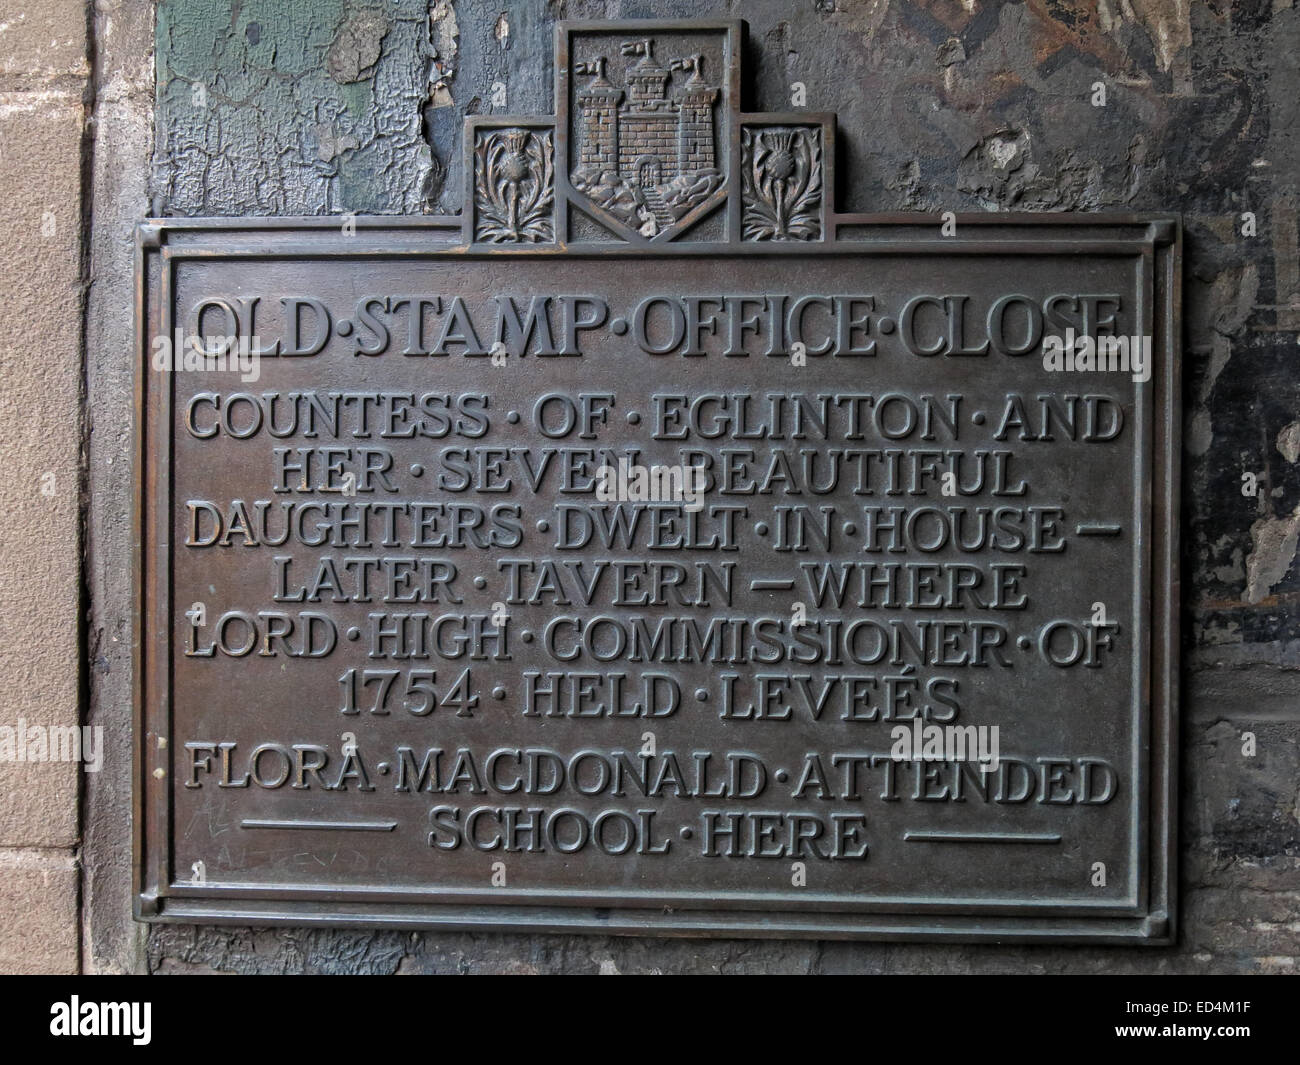 City,Scotland,UK,alley,alleyway,nook,corners,of,old,town,detail,of,plaque,brass,Countess,of,Eglinton,Tavern,called,Fortunes,Tavern,Ships,Tavern',Where,levées,were,held,by,the,General,Assemblys,Lord,High,Commissioner,of,1754,history,historic,old,ancient,Gotonysmith,housing,housed,the,Government,1821.,The,Royal,Bank,1727,to,1753,home,of,The,Countess,of,Eglinton,Tavern,called,Fortunes,Tavern,Ships,Tavern',Where,levées,were,held,by,the,General,Assemblys,Lord,High,Commissioner,of,1754,Flora,McDonald,associated with Bonnie Prince Charlie attended boarding school here.,Buy Pictures of,Buy Images Of